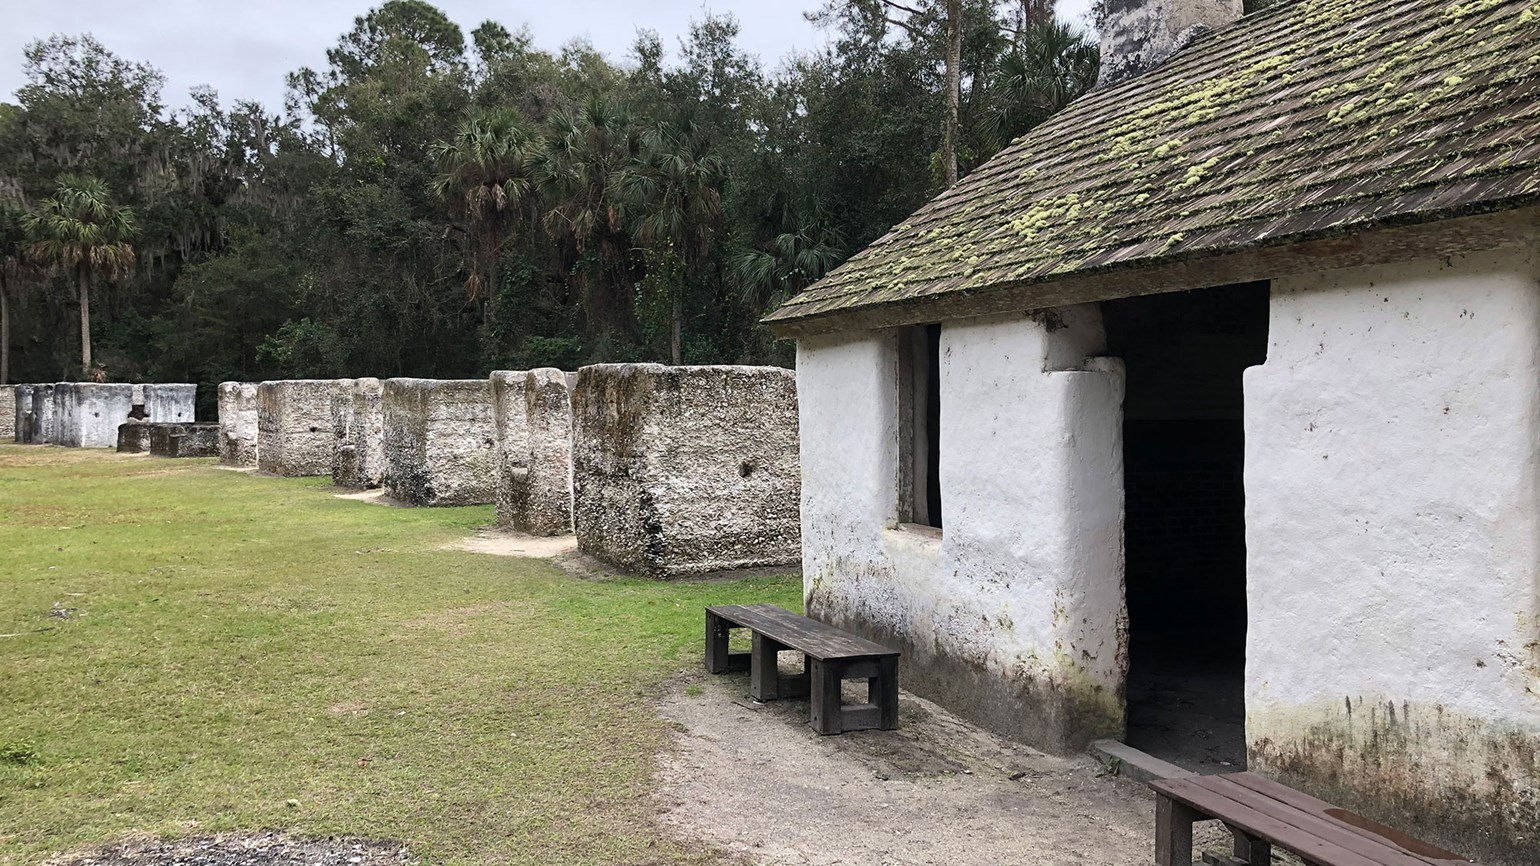 Exploring a piece of Florida's antebellum history at Kingsley Plantation